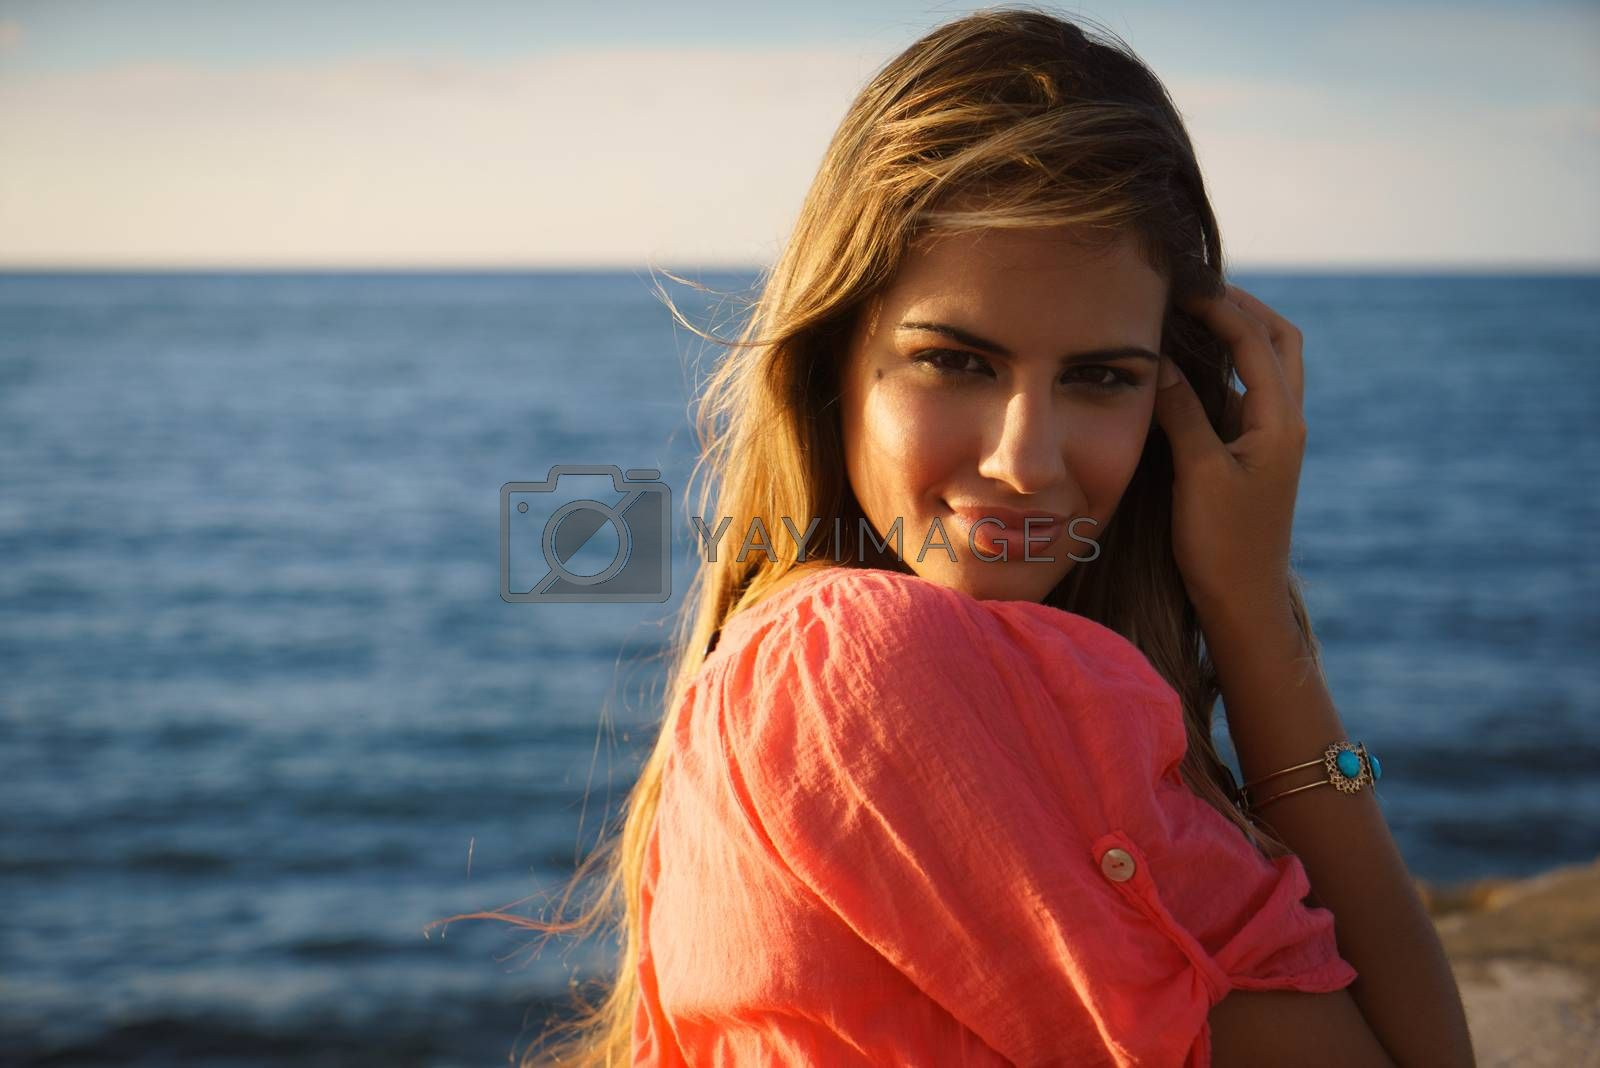 Royalty free image of Portrait young woman smile happy sea beauty by diego_cervo